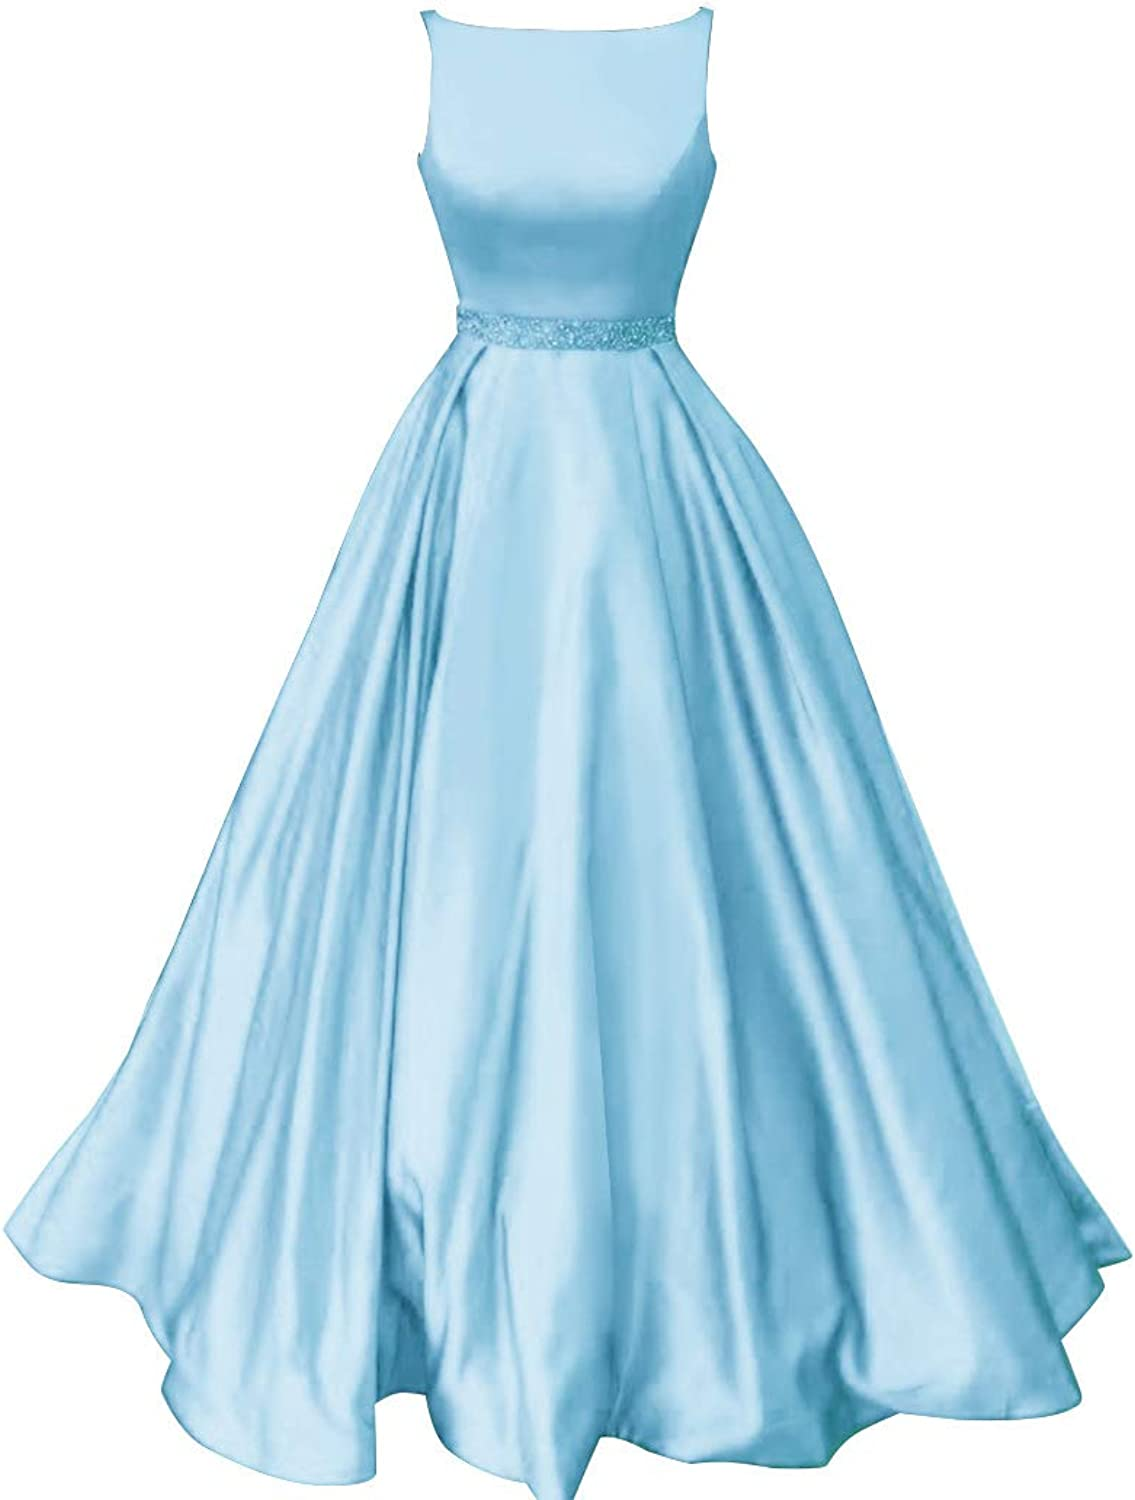 Staypretty Prom Dresses Boat Neck Satin Beaded Aline Ruffled Formal Women Evening Party Gown